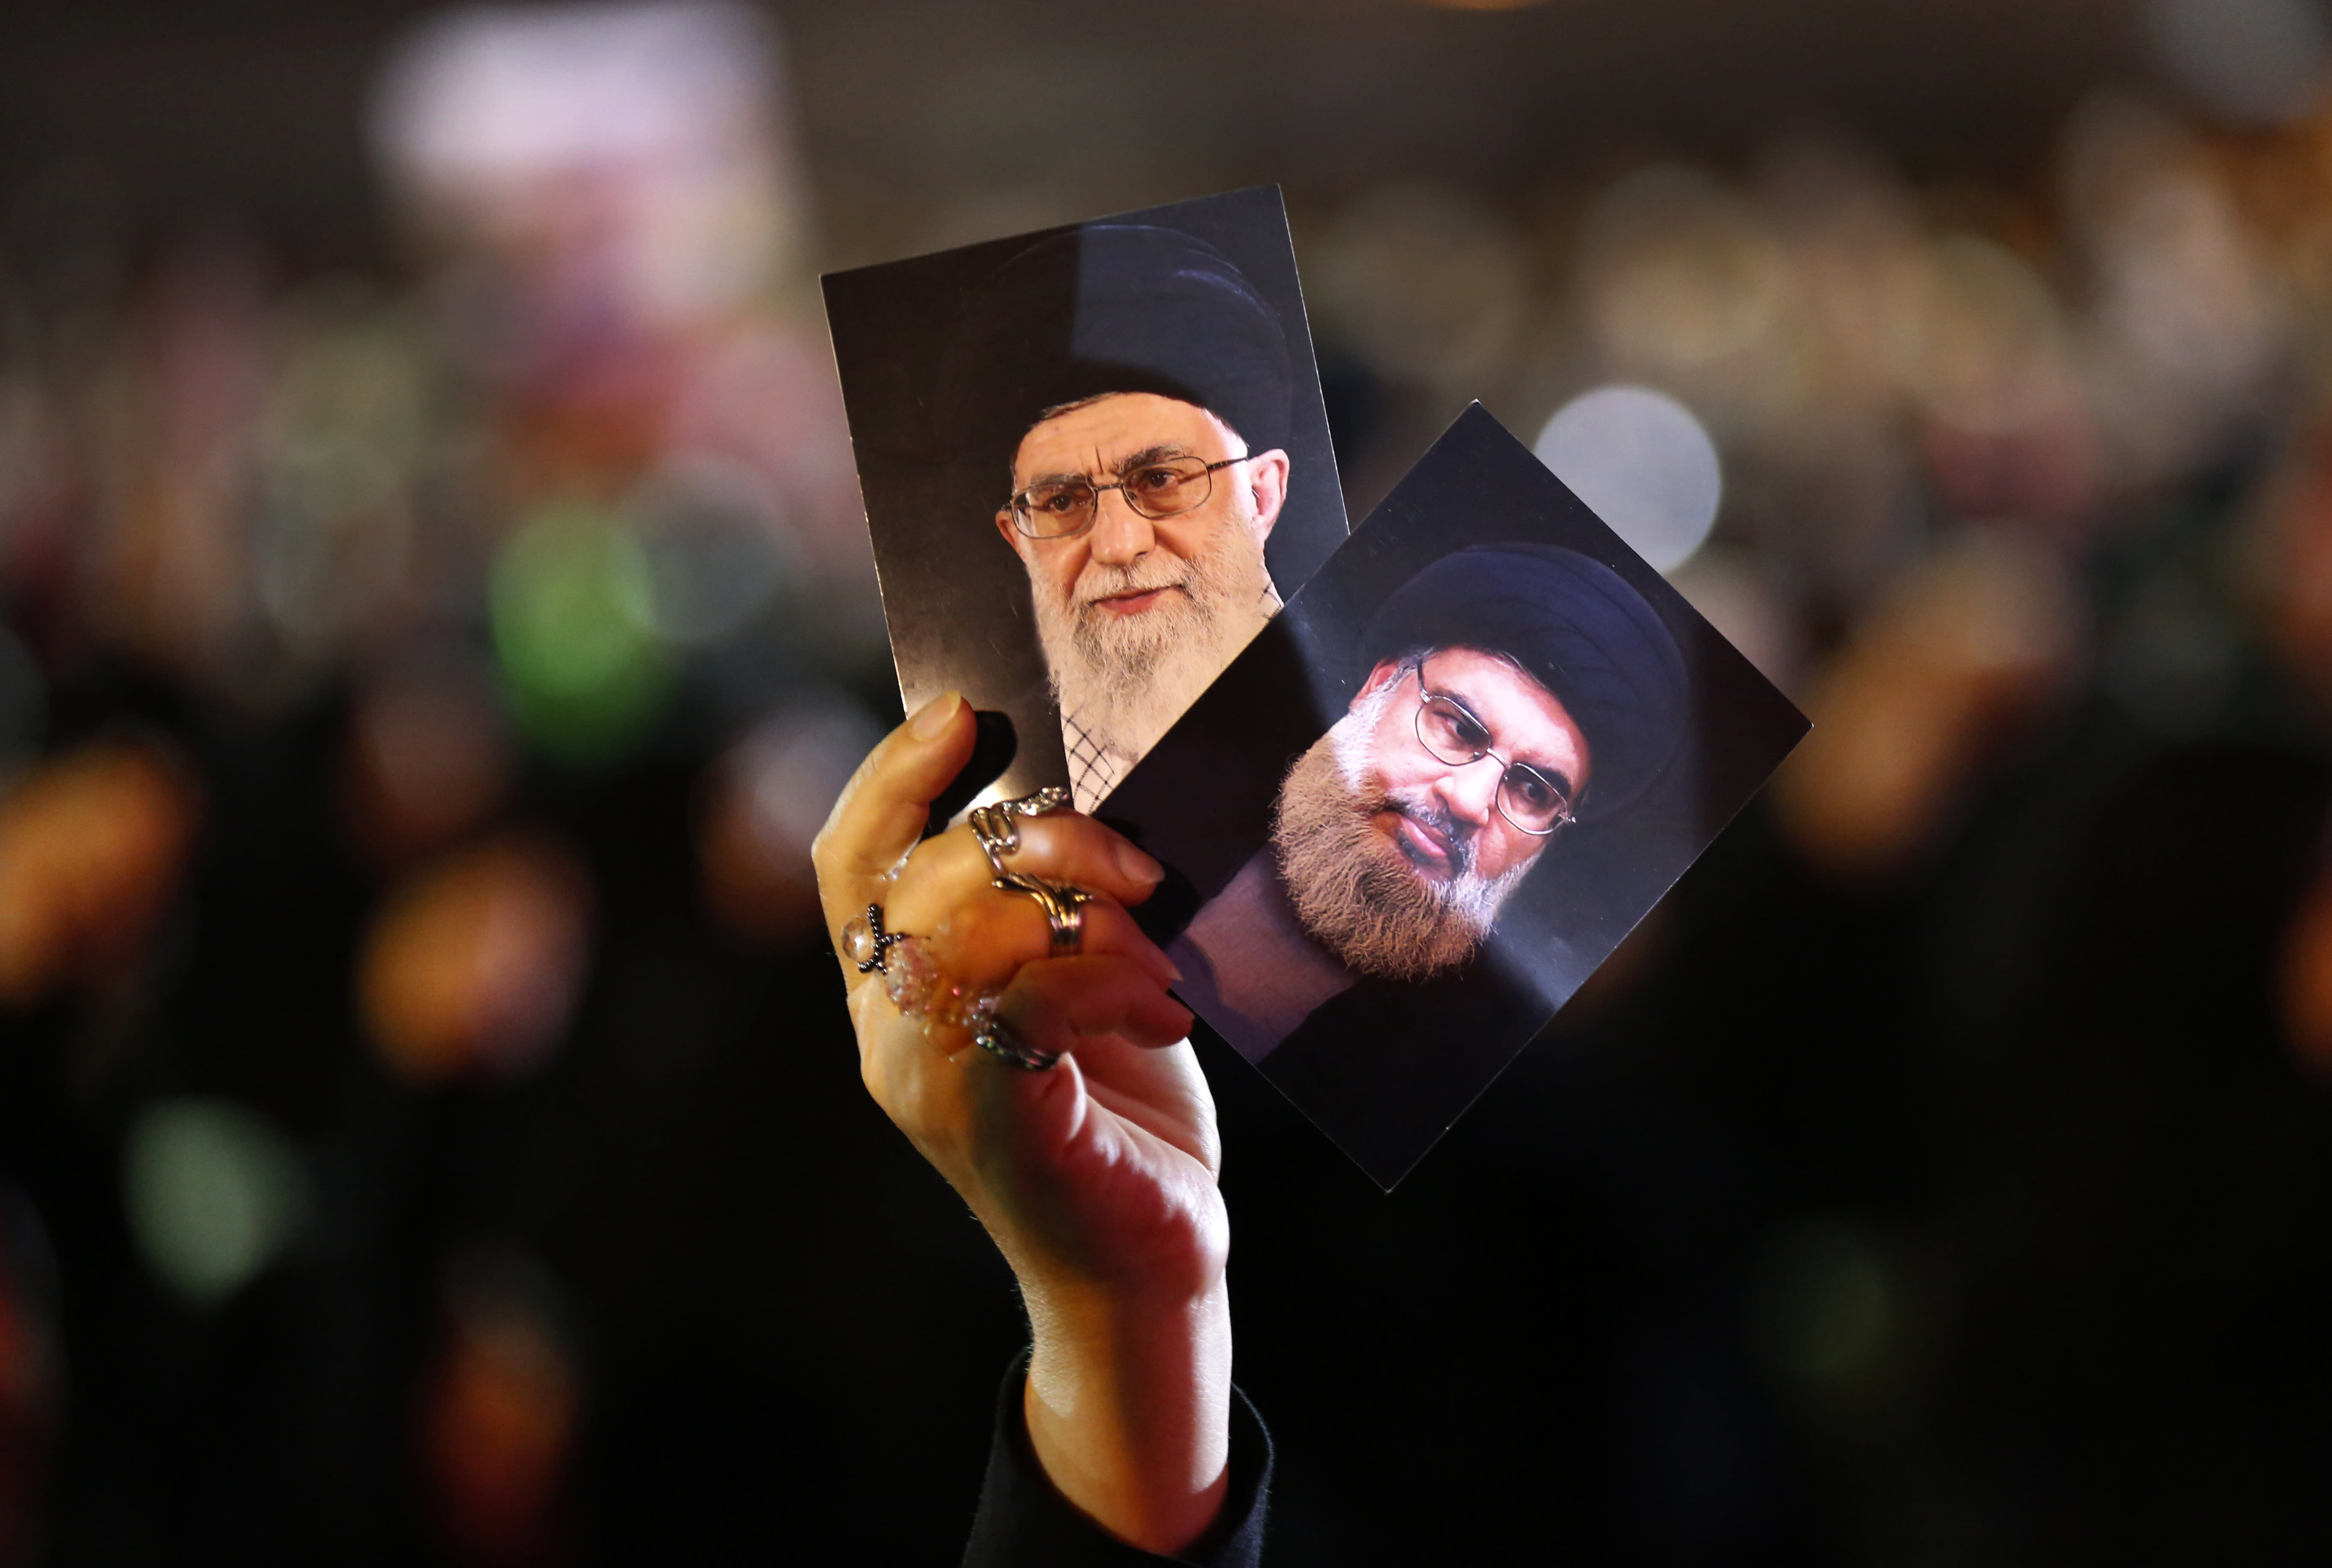 A Hezbollah supporter holds up portraits of Hezbollah leader Sheikh Hassan Nasrallah, right, and Iran's supreme leader Ayatollah Ali Khamenei, left, during activities to mark the ninth of Ashura, a 10-day ritual commemorating the death of Imam Hussein, in a southern suburb of Beirut, Lebanon, Wednesday, Sept. 19, 2018. Hassan Nasrallah says his group may reduce the number of its fighters in Syria because of an easing of the conflict, particularly after a recent Russian-Turkey agreement that prevented an offensive on the last rebel stronghold. (AP Photo/Hussein Malla)